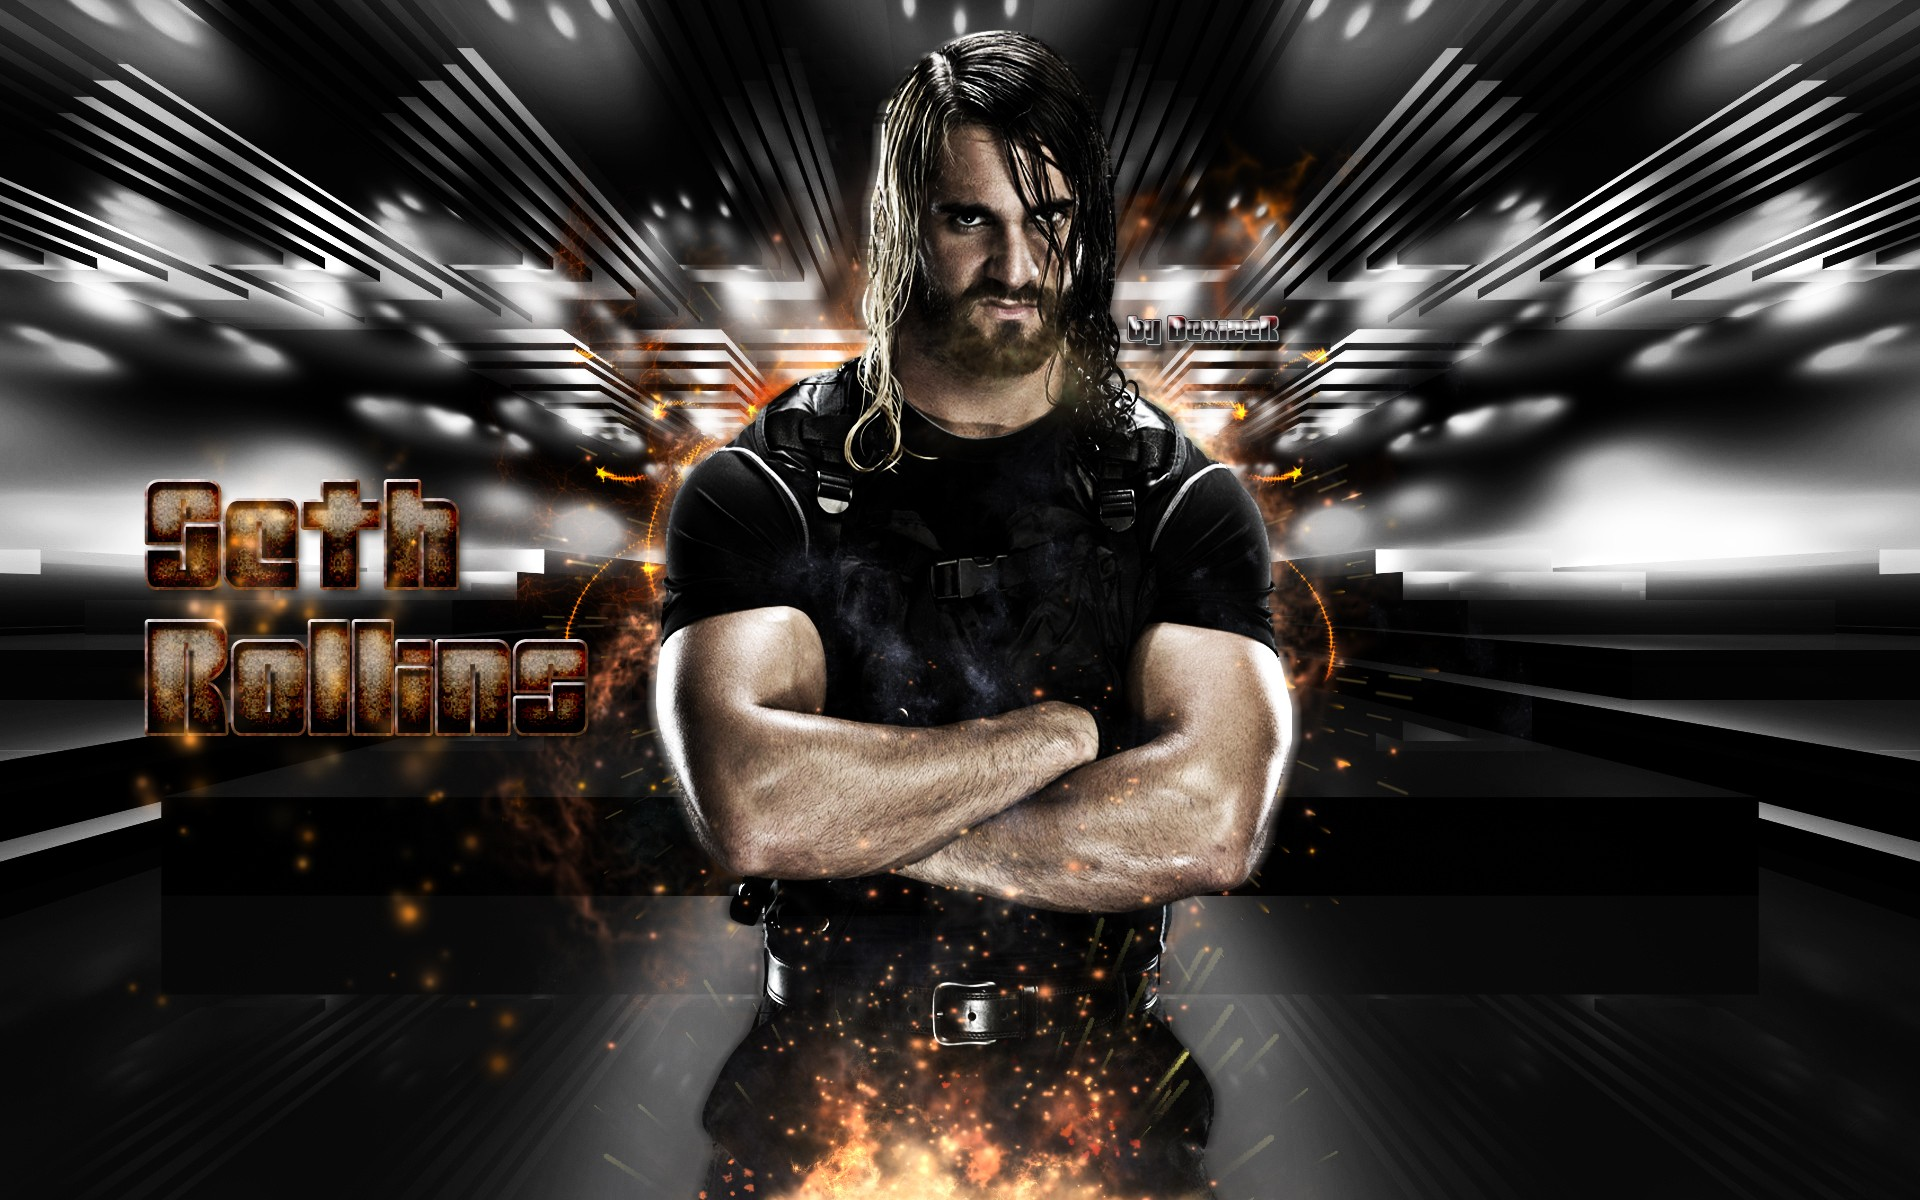 WWE Superstar Seth Rollins Wallpapers   New HD Wallpapers 1920x1200